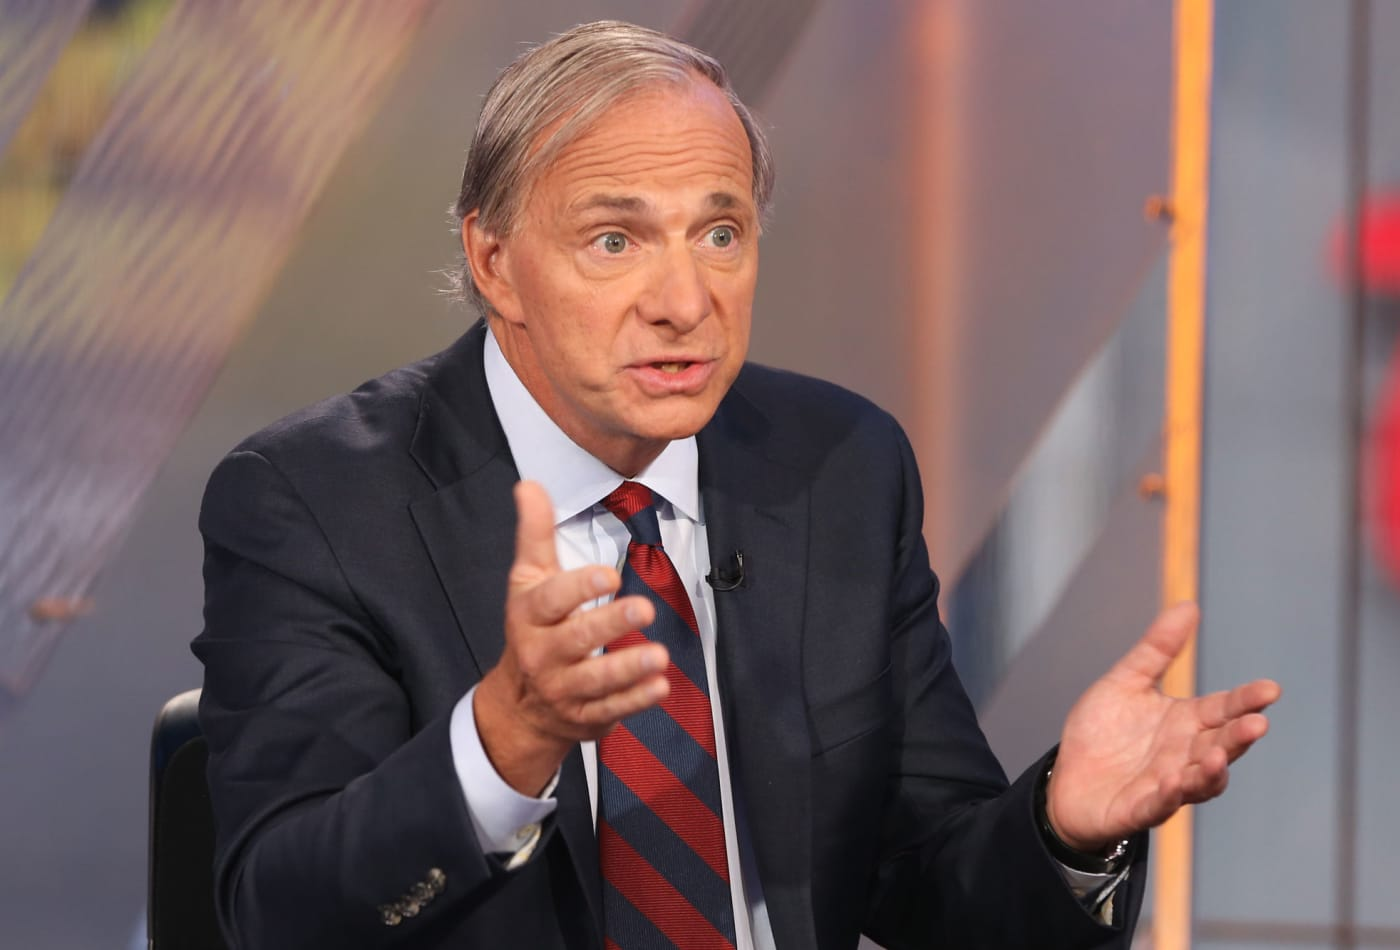 Bridgewater Associates' Ray Dalio: How to have productive meetings